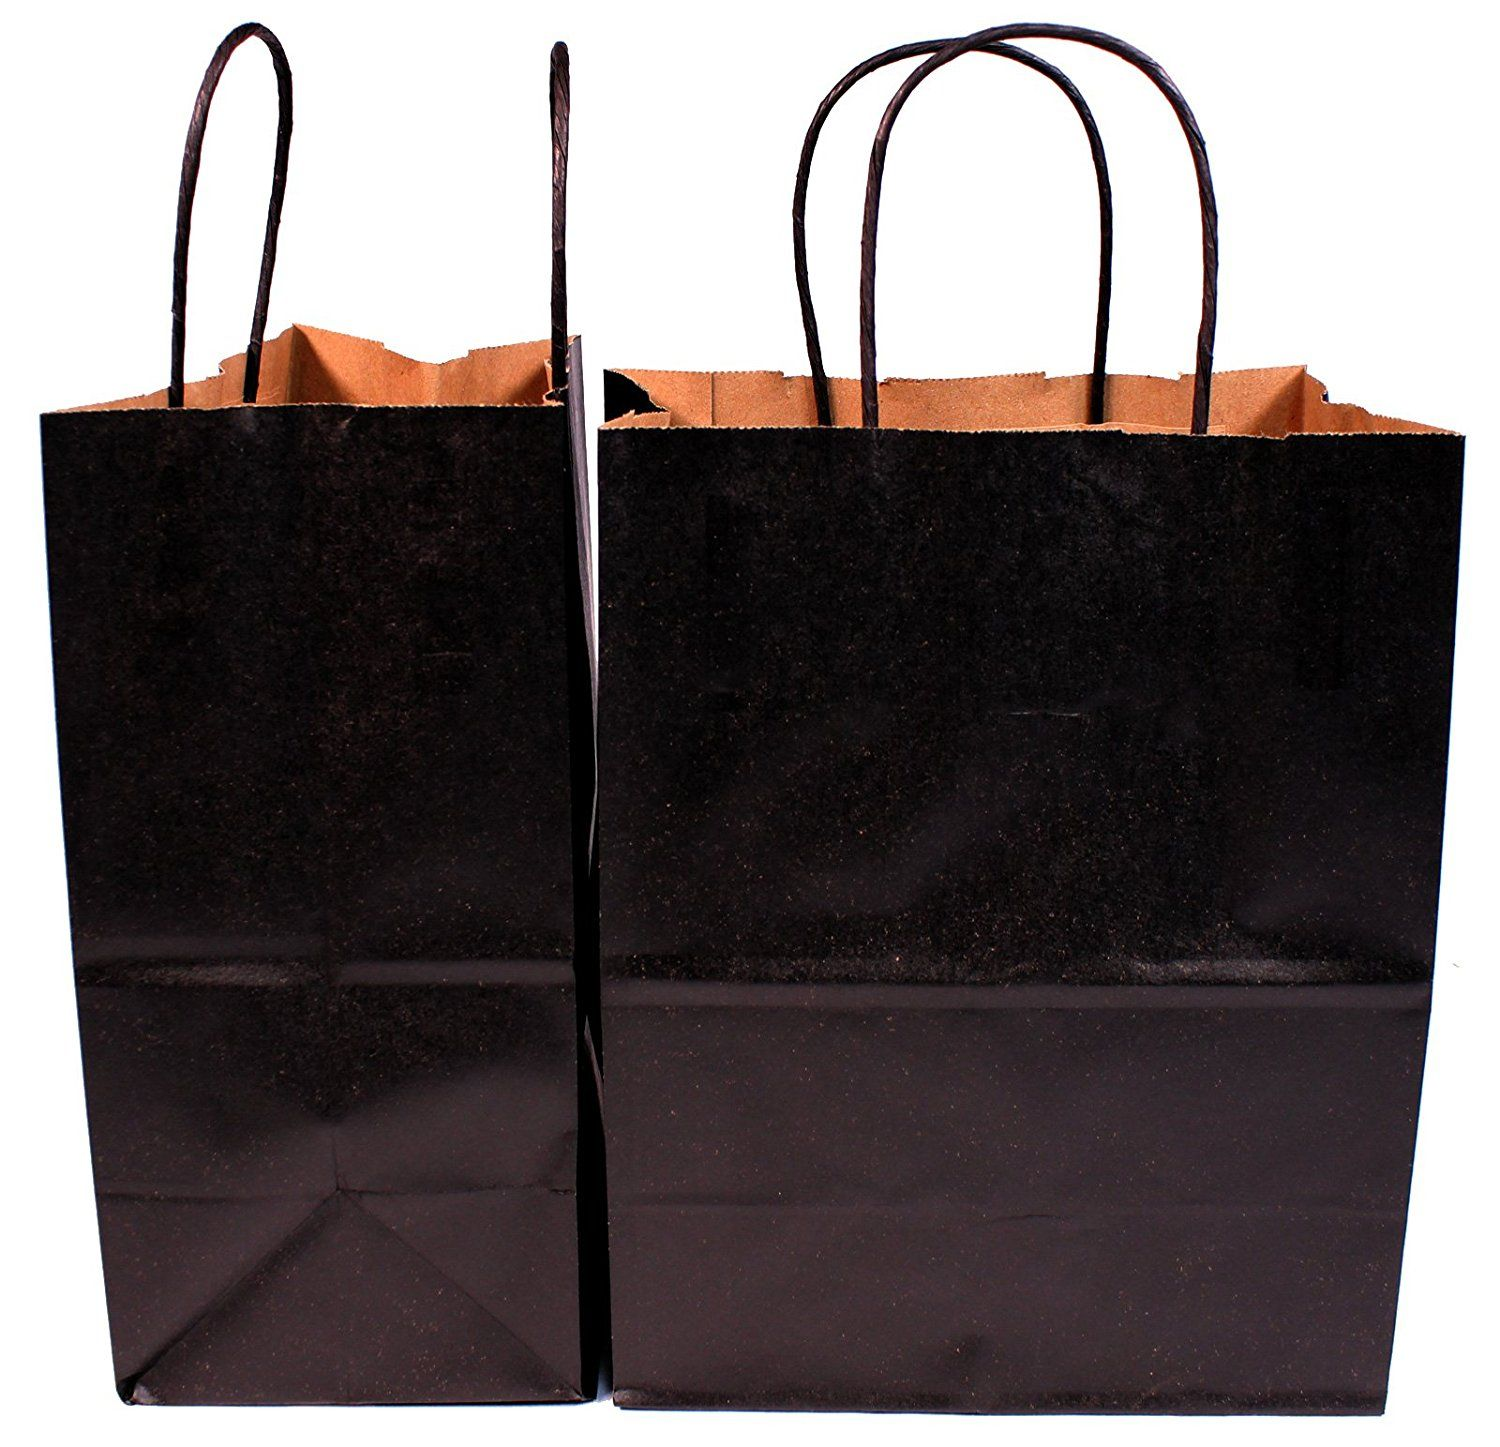 Creative Hobbies Medium Size Eco Kraft Paper Gift Handle Bags 8 X 4 5 X 10 5 Inch 100 Recycled Paper Black P Paper Gifts Creative Hobbies Recycled Paper